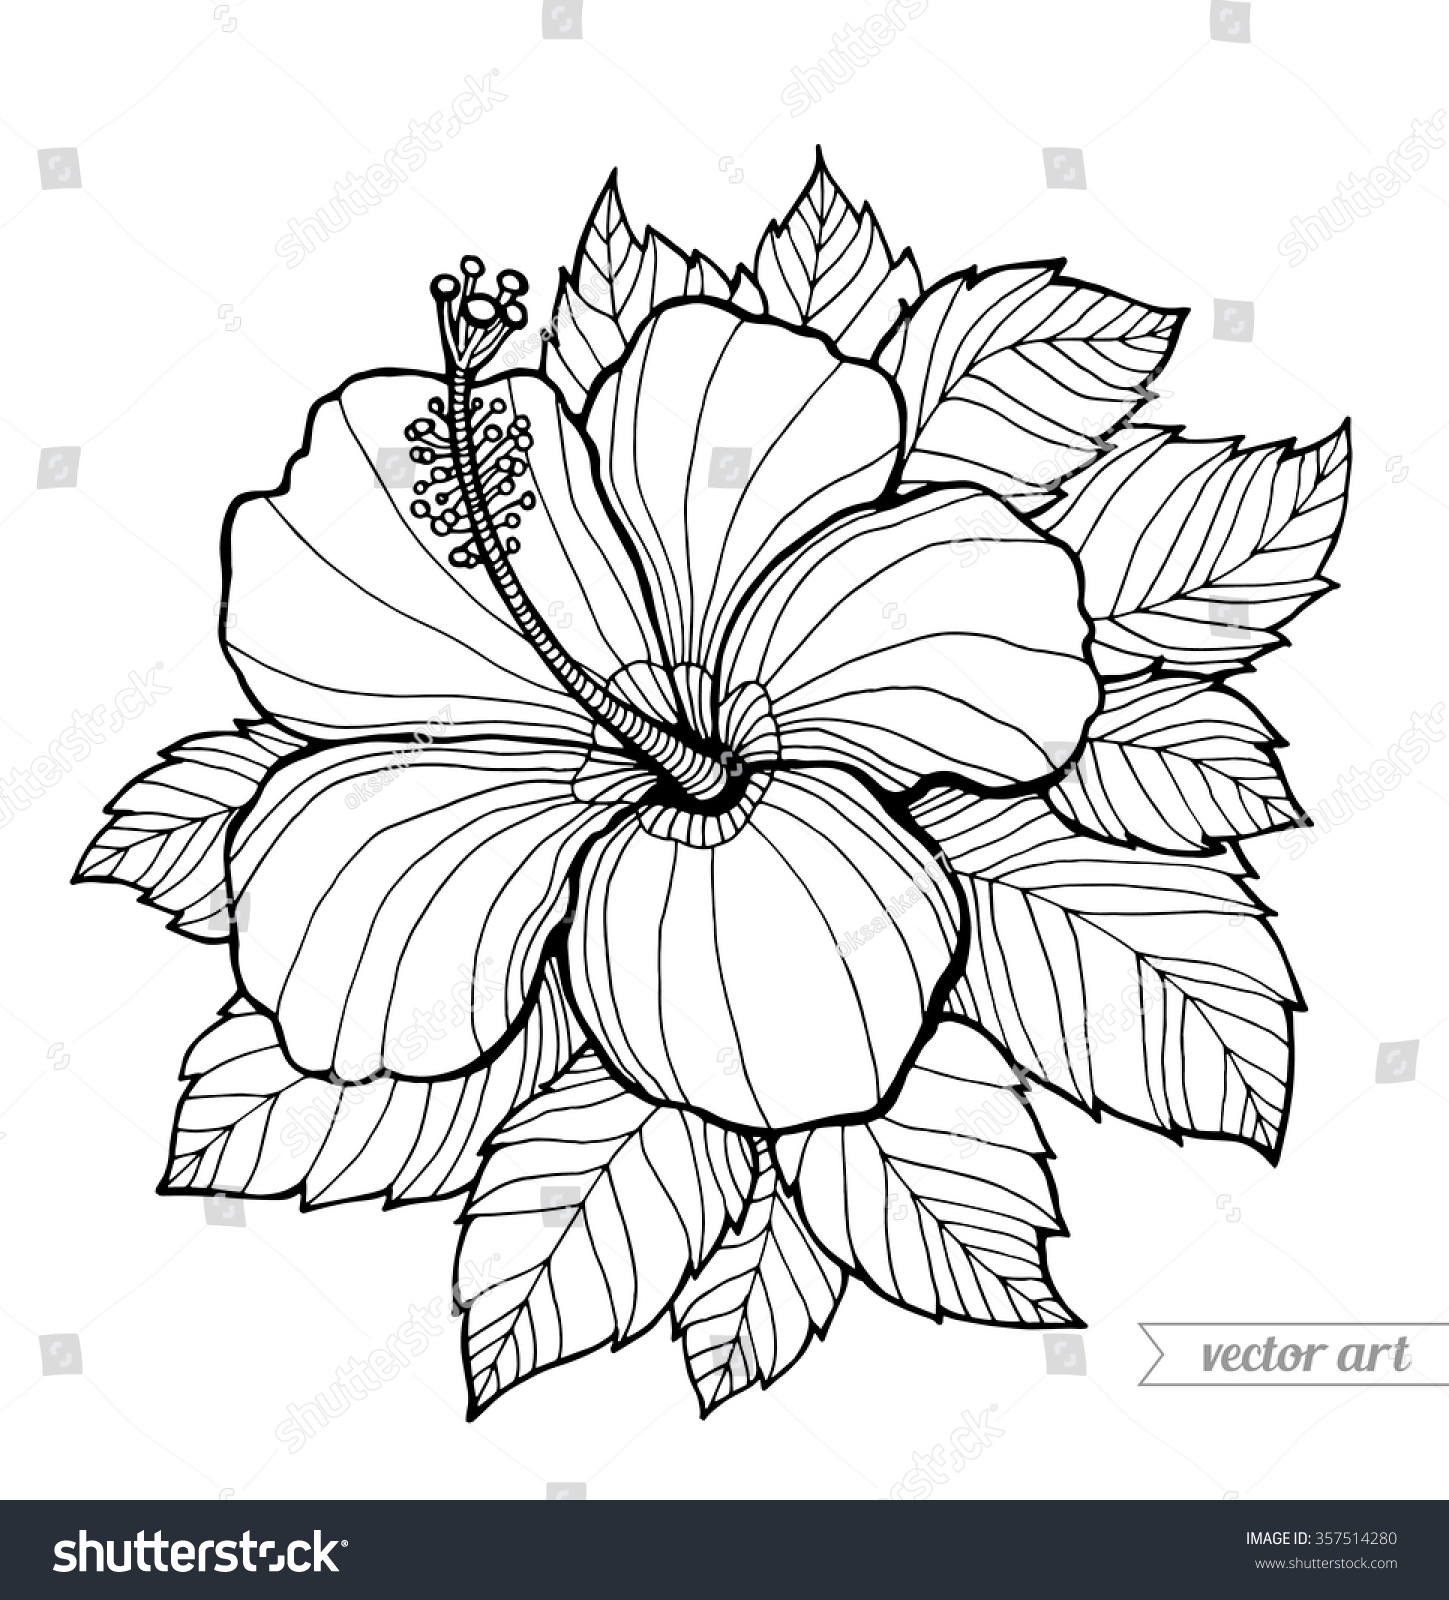 hibiscus coloring pages - hawaii hibiscus flower leaf aloha hawaii stock vector